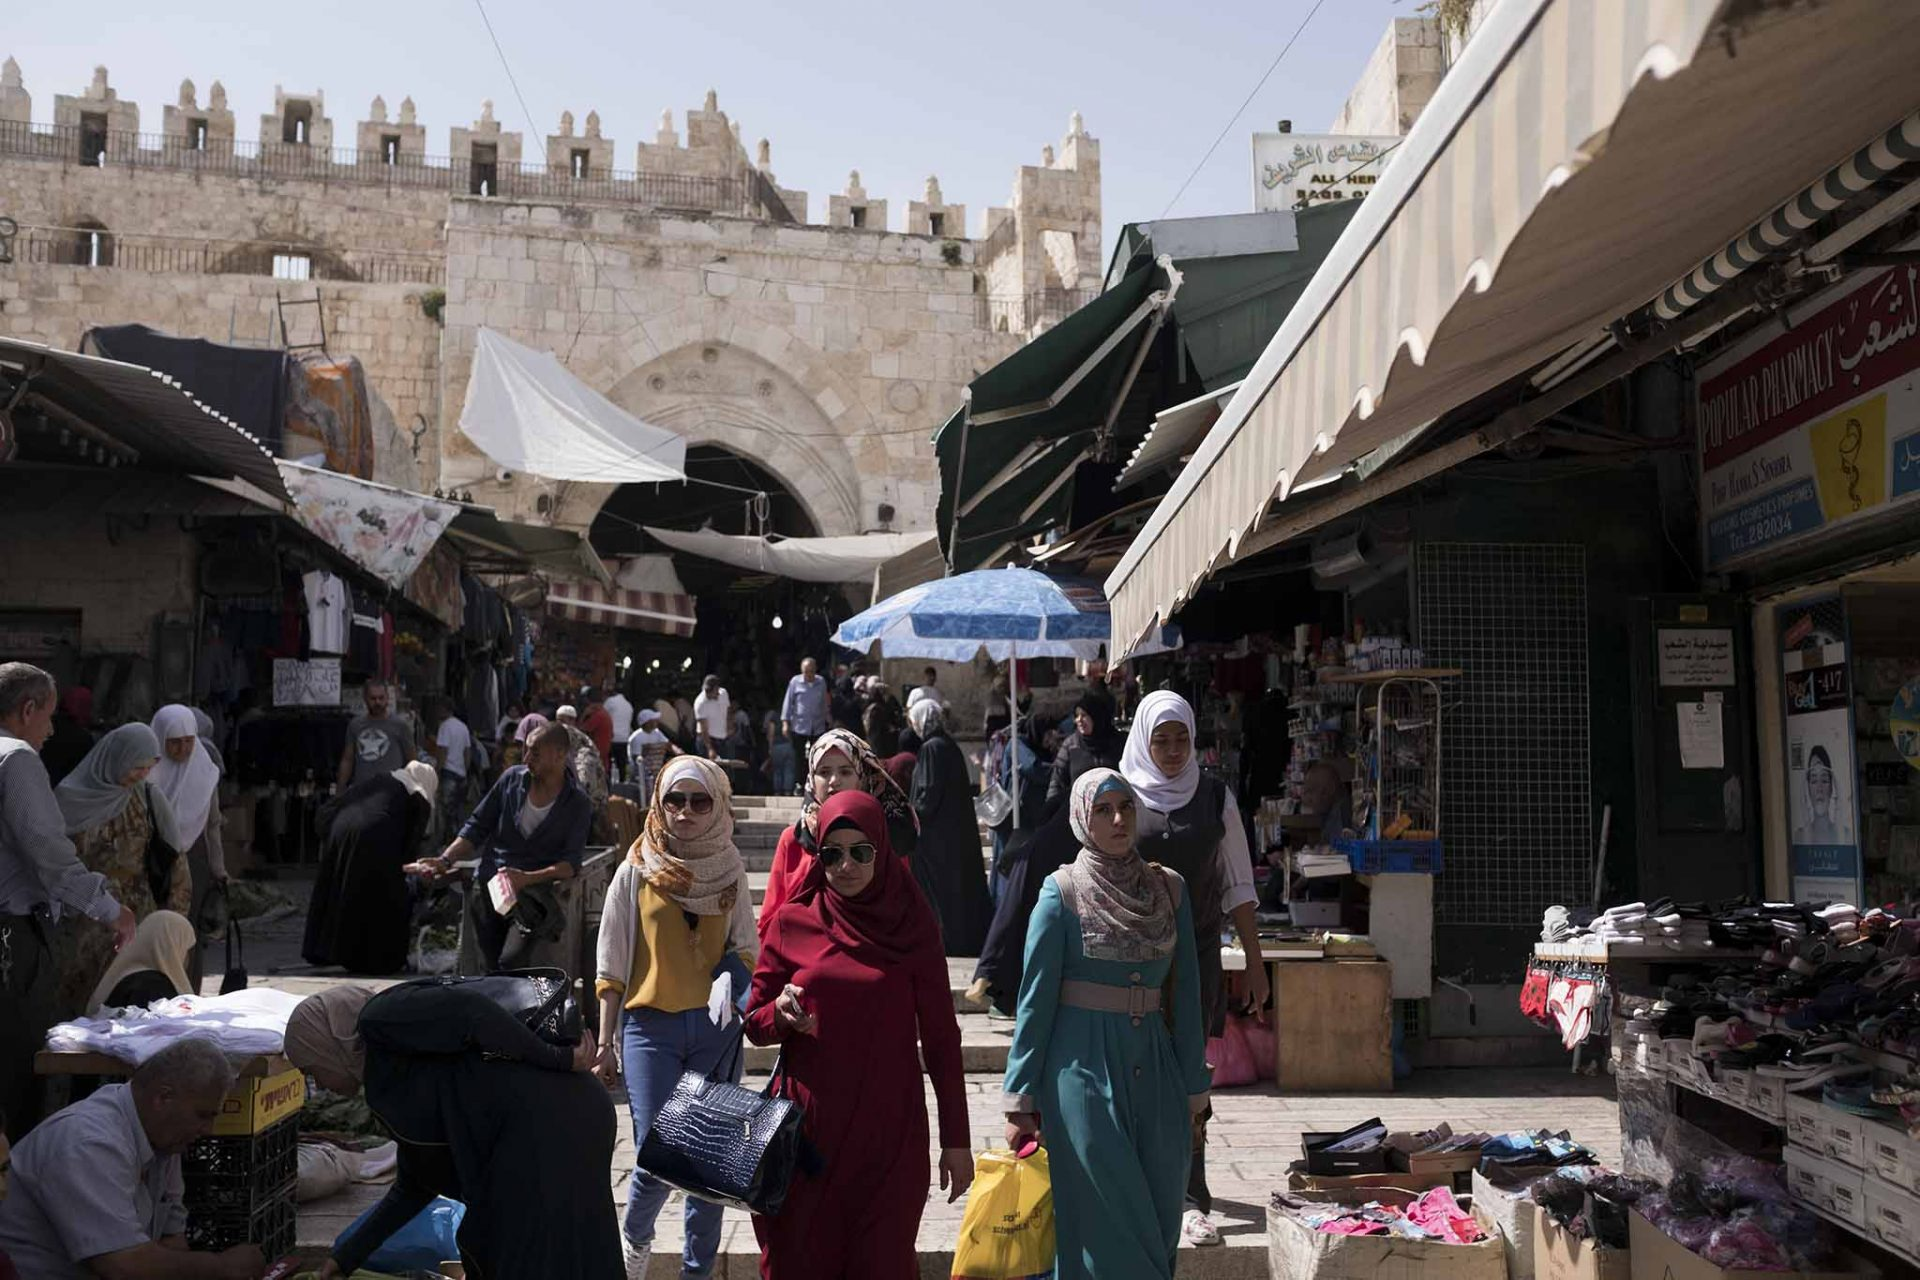 Daily Life in the city of Jerusalem ahead of Jerusalem Day